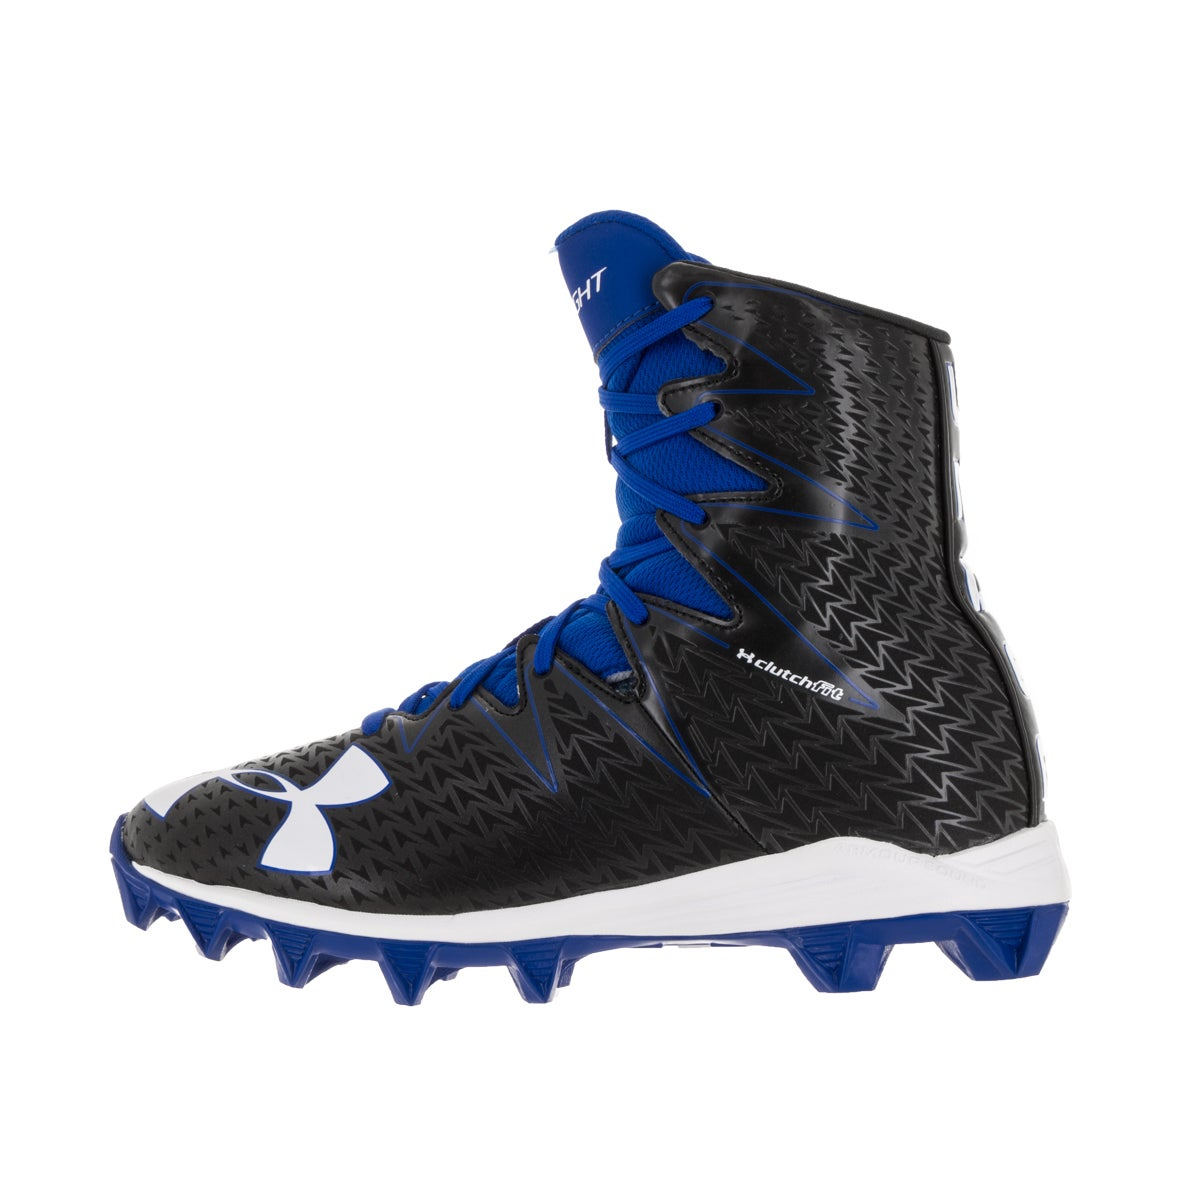 929b3bb74a428 Shop Under Armour Kids UA Highlight RM Jr. Blk/Try Football Cleat - Free  Shipping Today - Overstock - 13404588